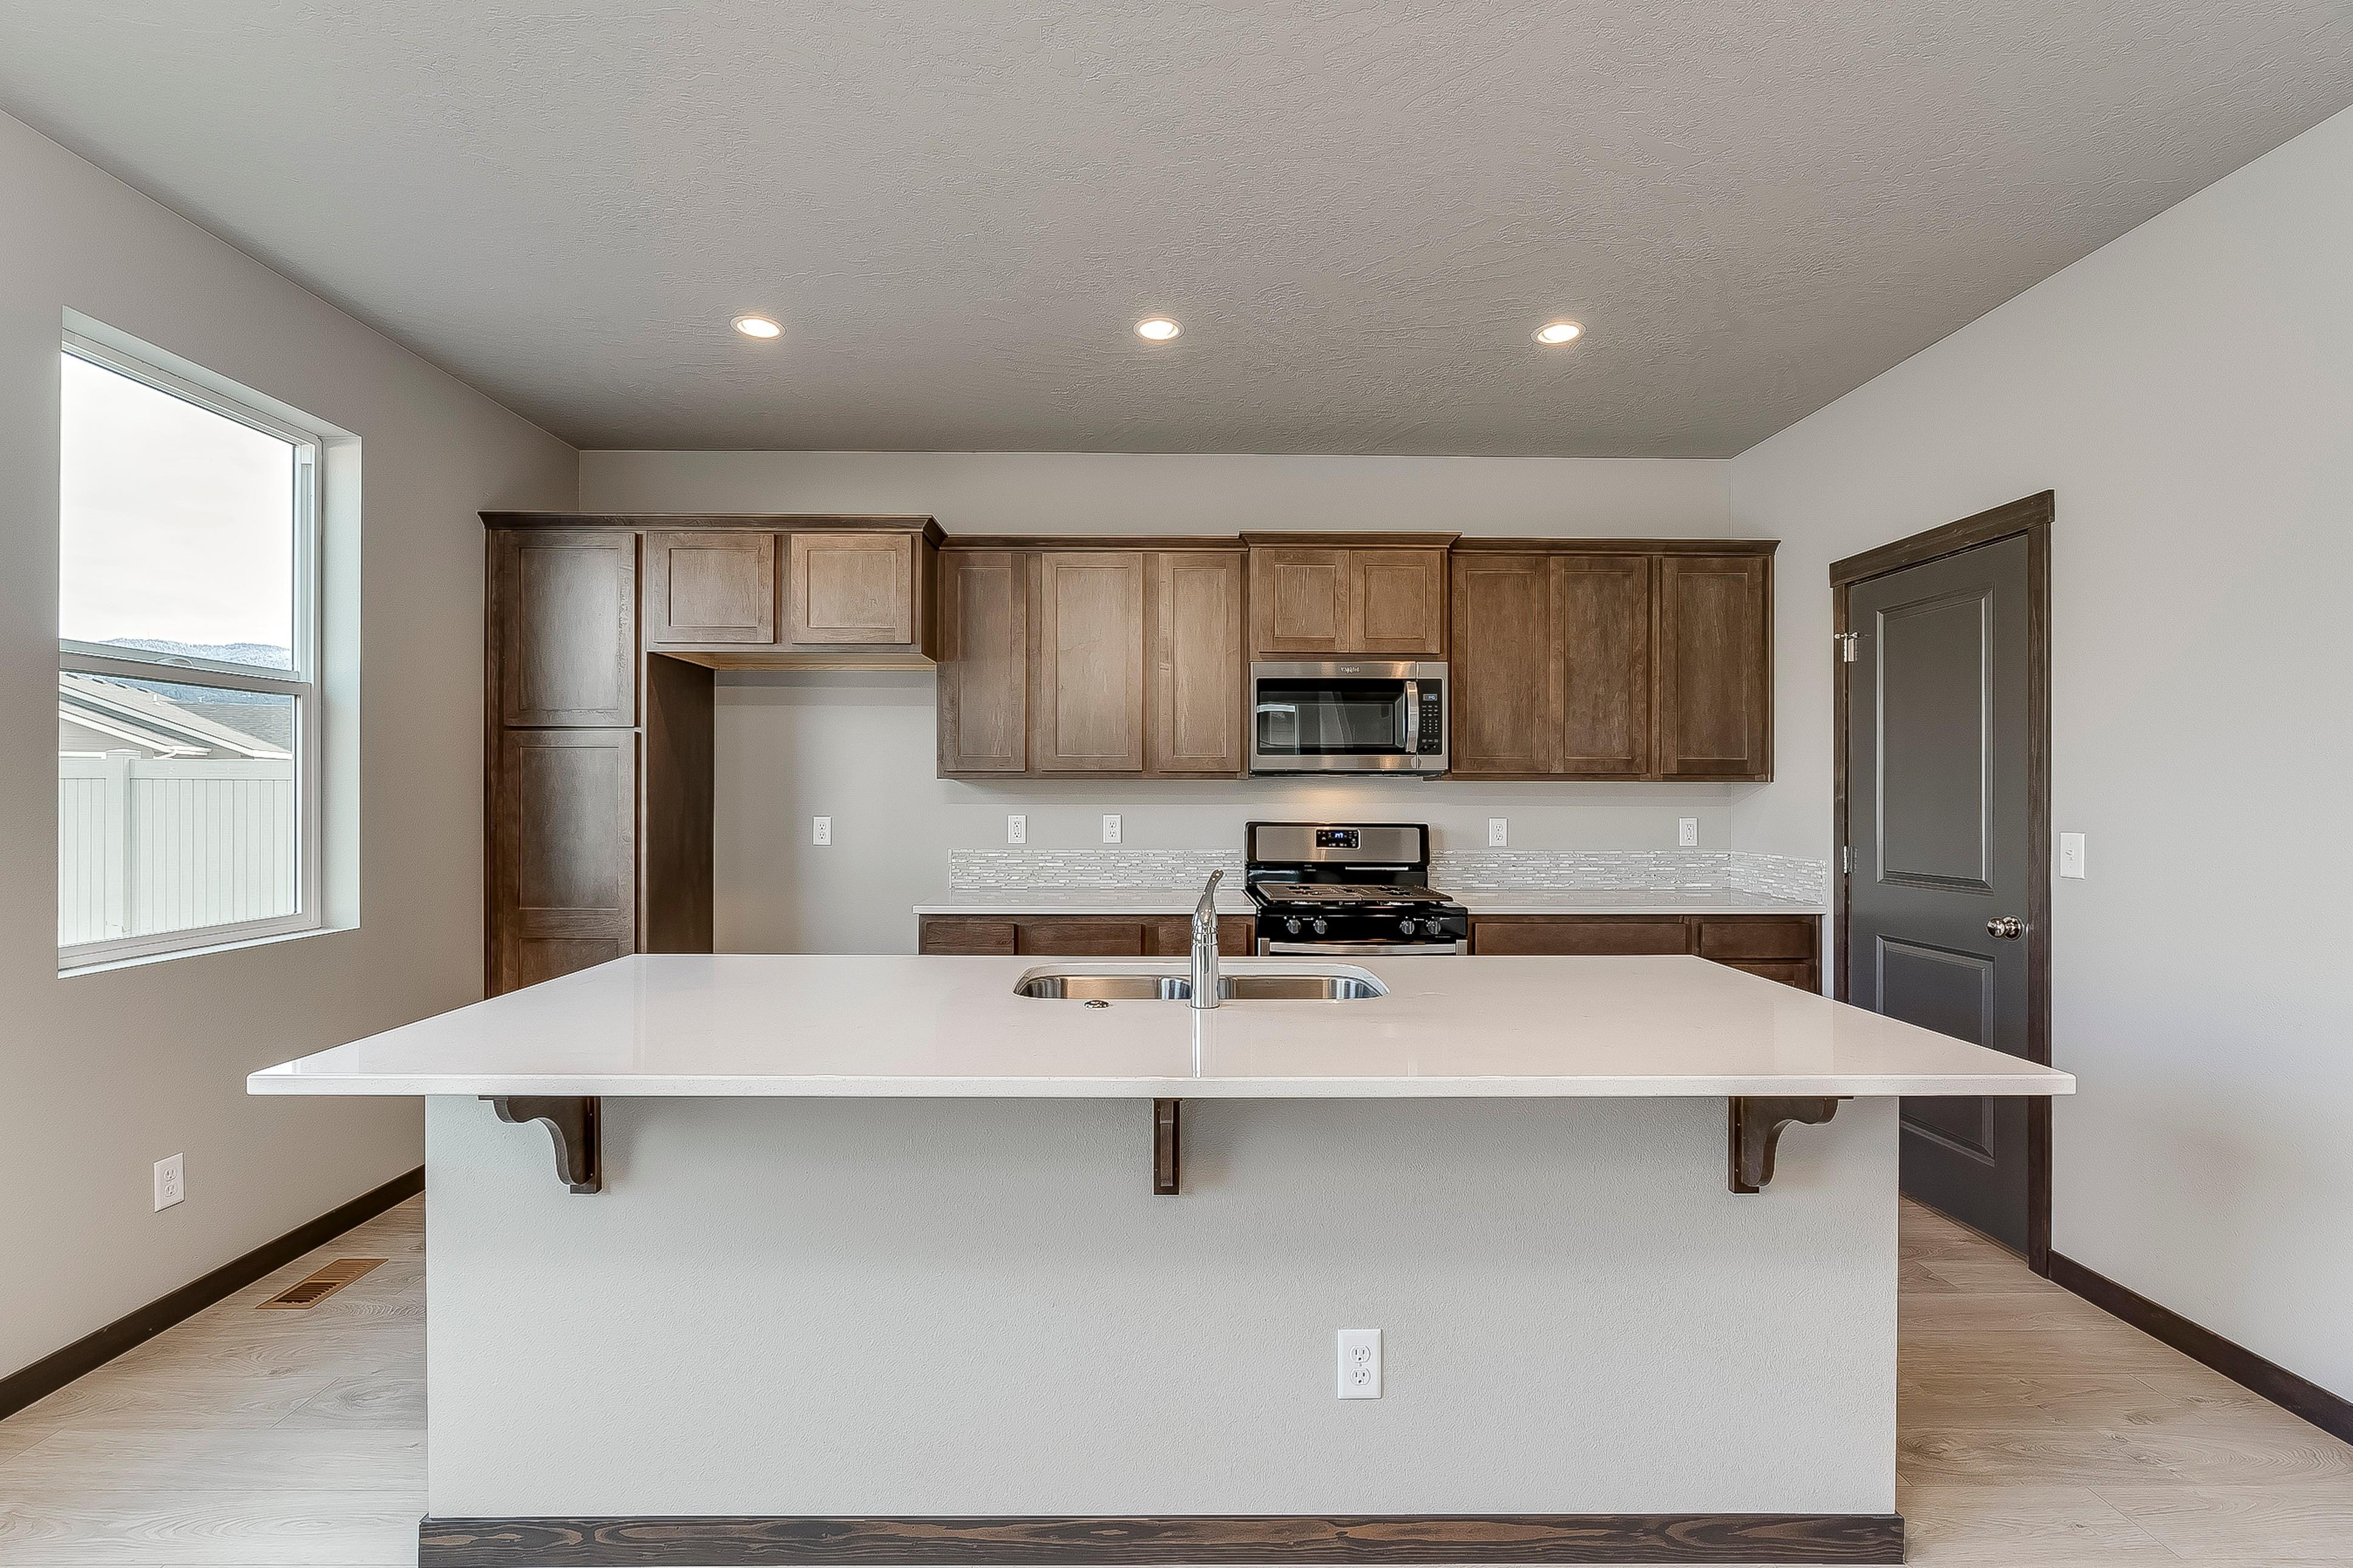 Kitchen featured in the Sawtooth Craftsman By Painted Rock Homes in Spokane-Couer d Alene, ID